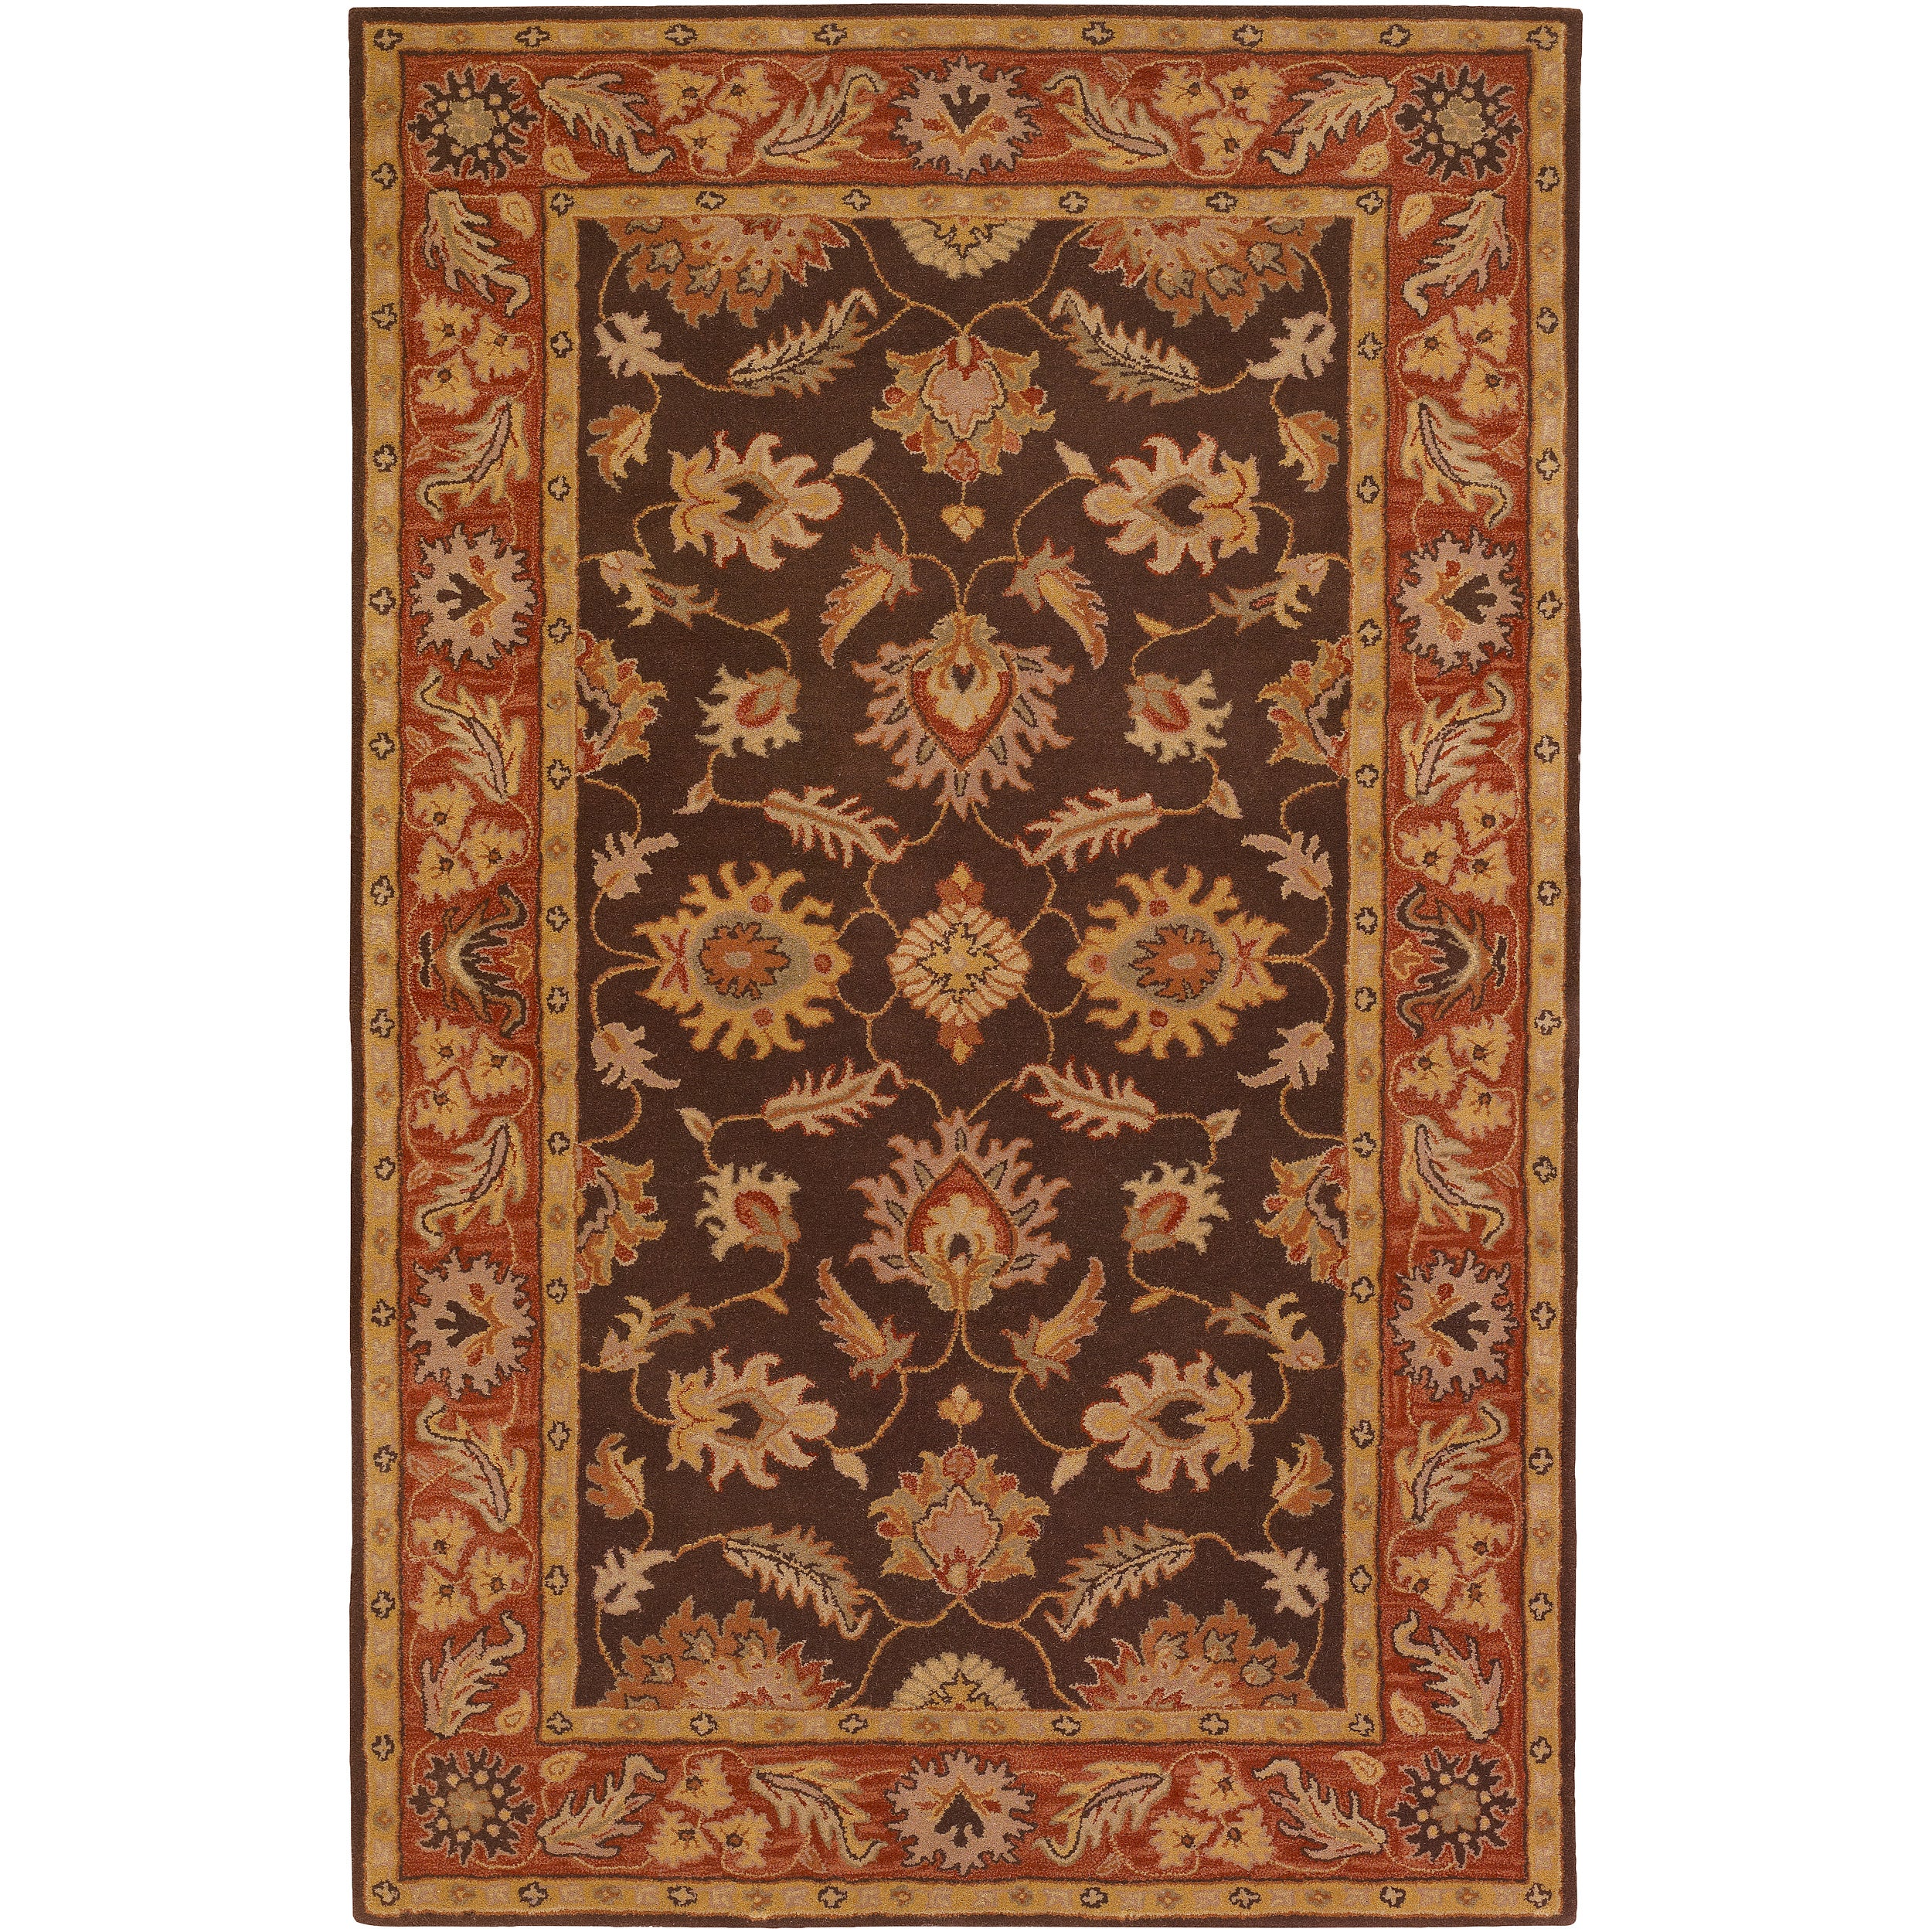 Hand-tufted Flanders Brown Floral Border Wool Rug (2' x 3') - Thumbnail 0